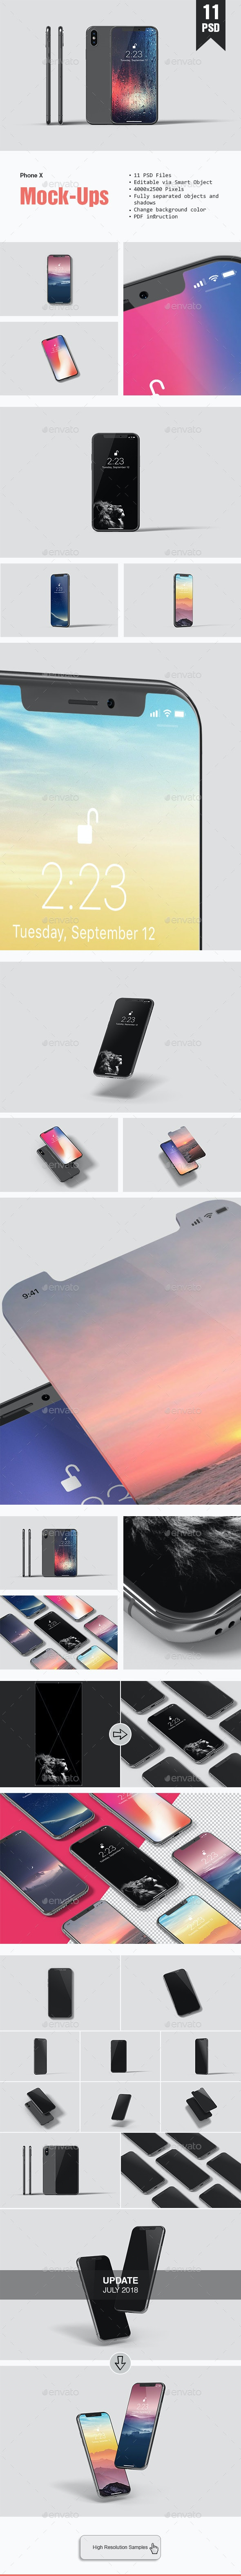 Phone X Mockup - Mobile Displays